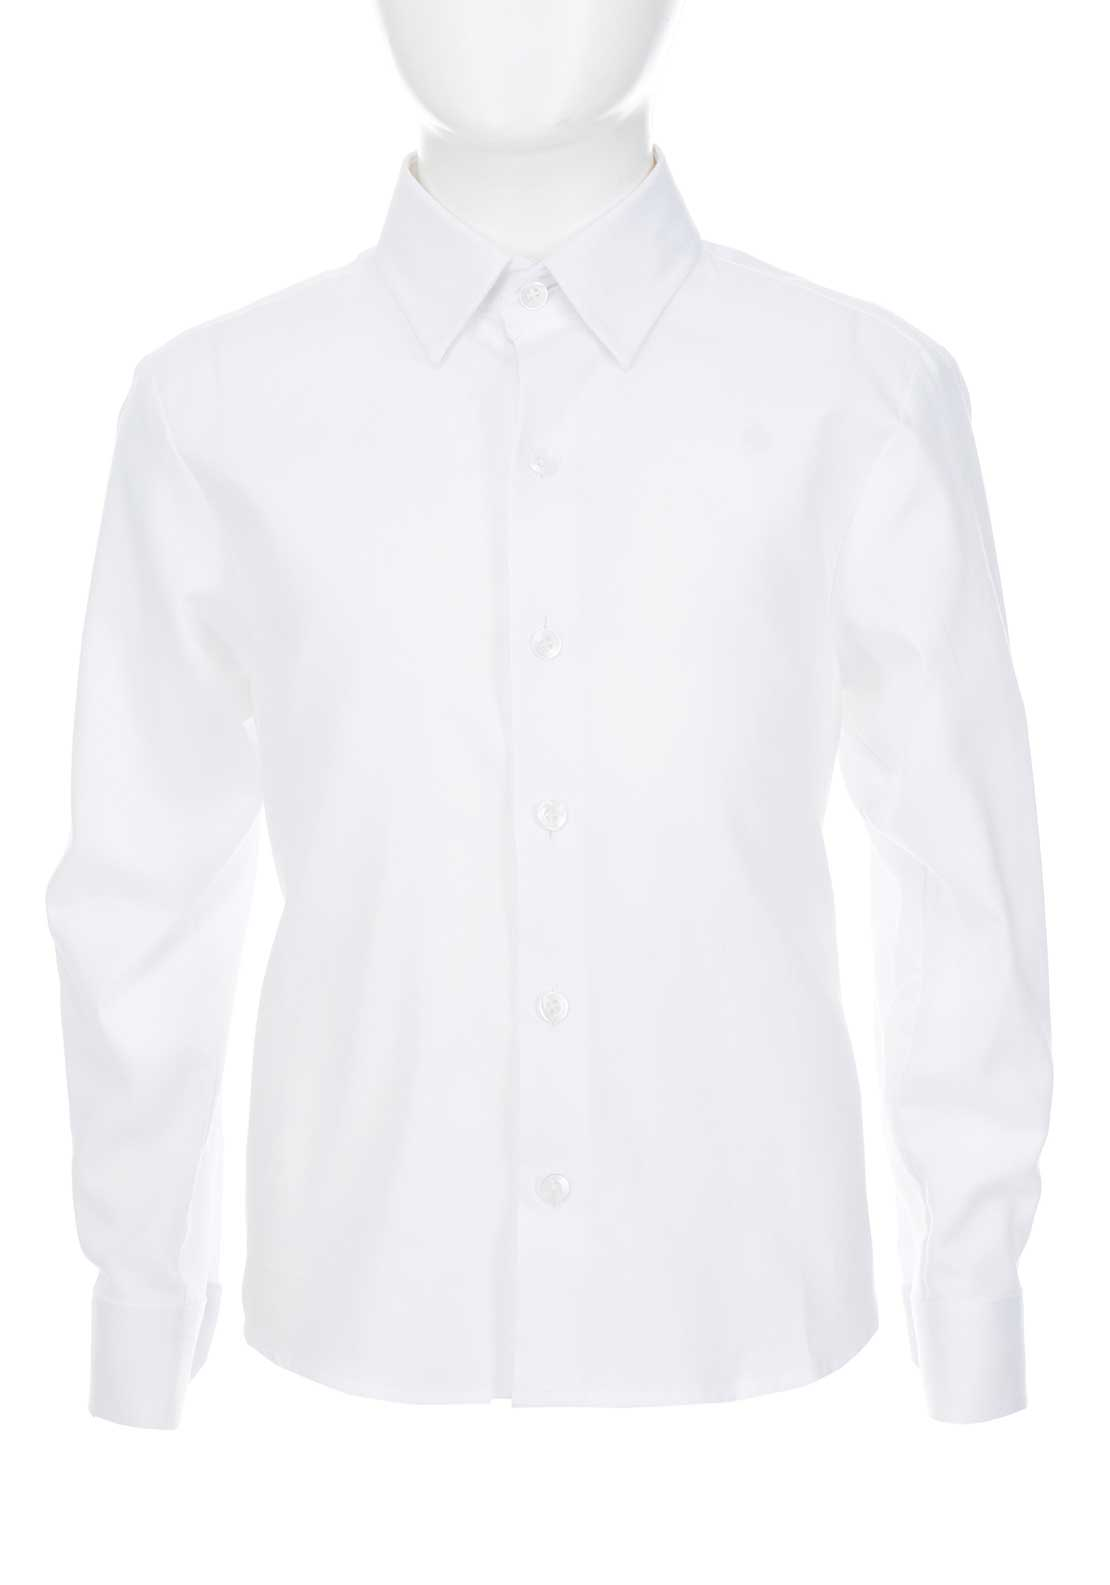 Weise Boys Woven Cotton Shirt, White